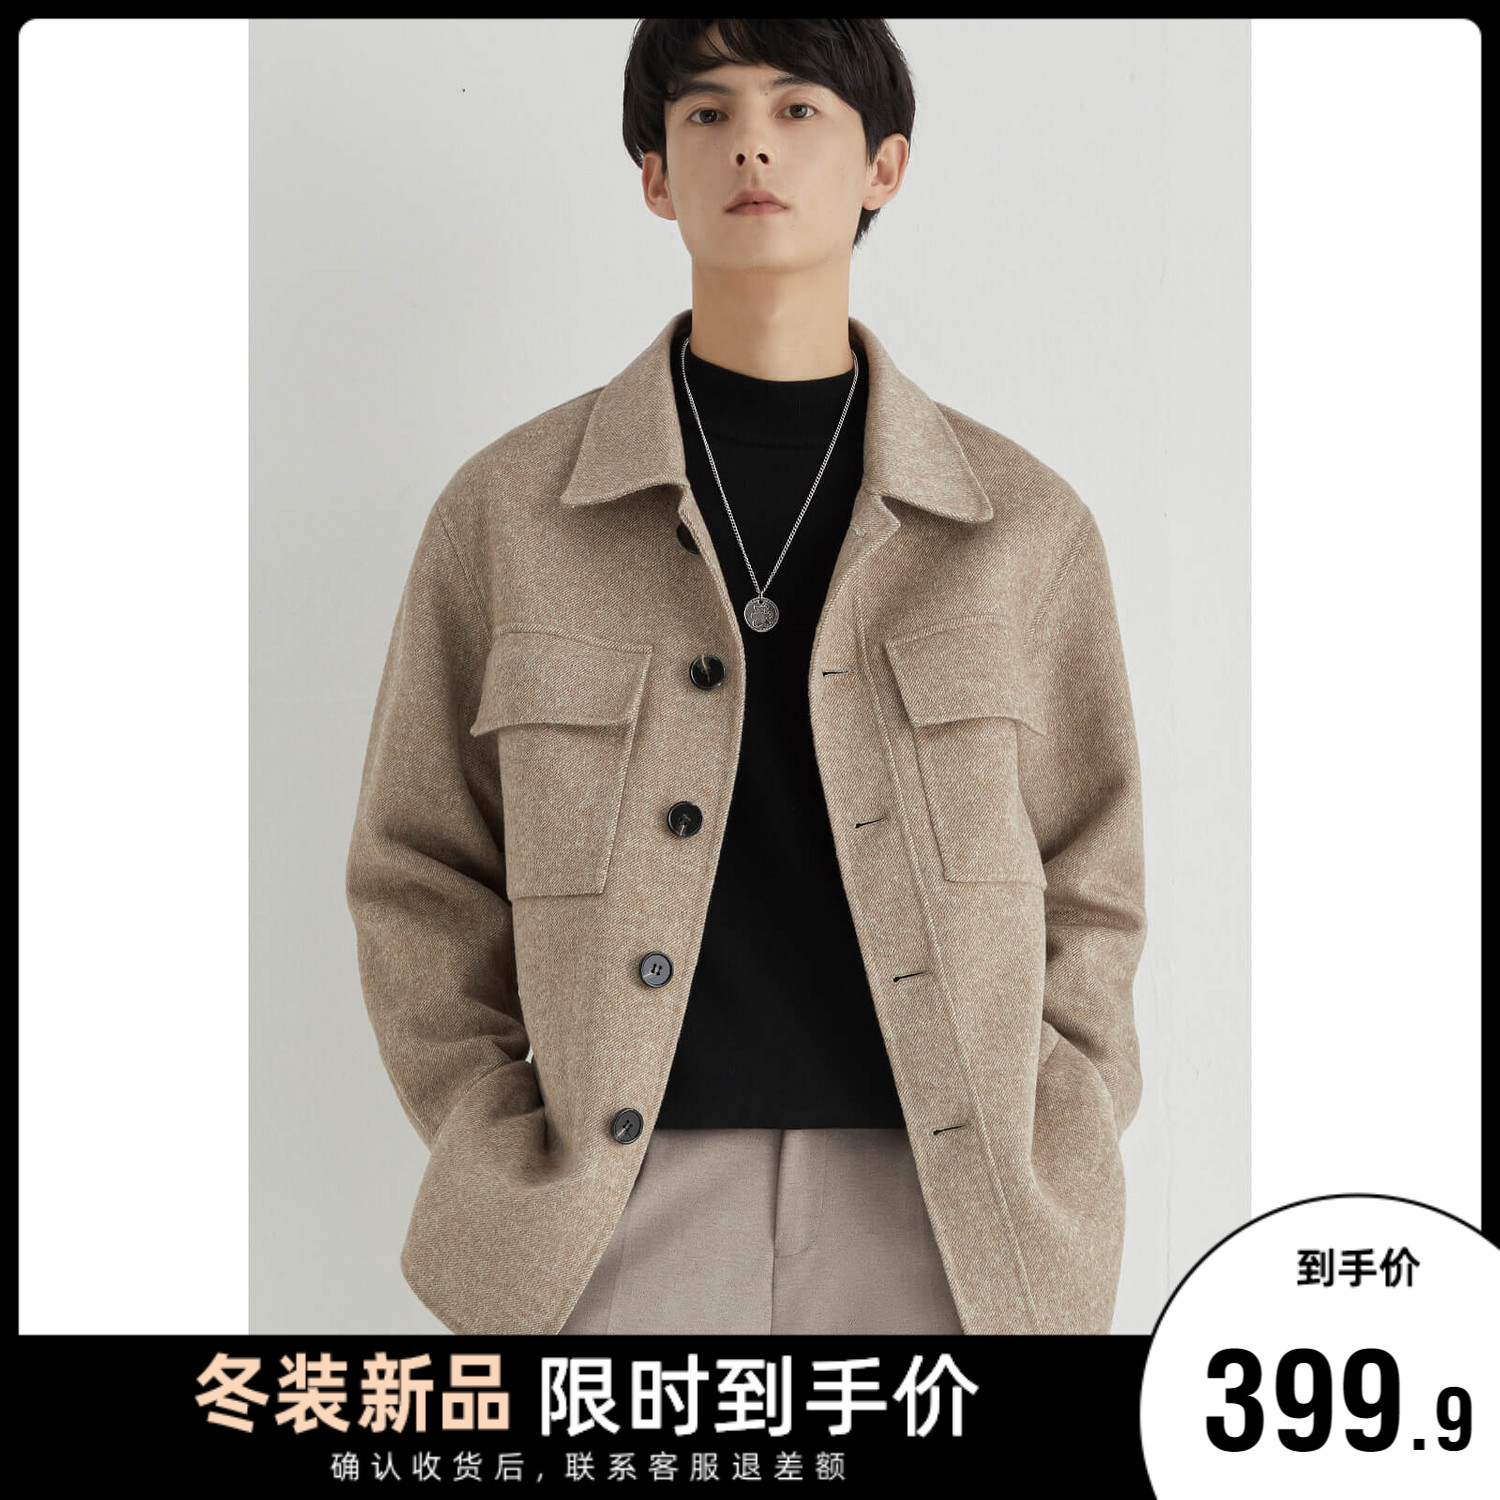 Storage double-sided woolen jacket men's alpaca wool jacket winter Nepalese casual men's lapel woolen woolen jacket